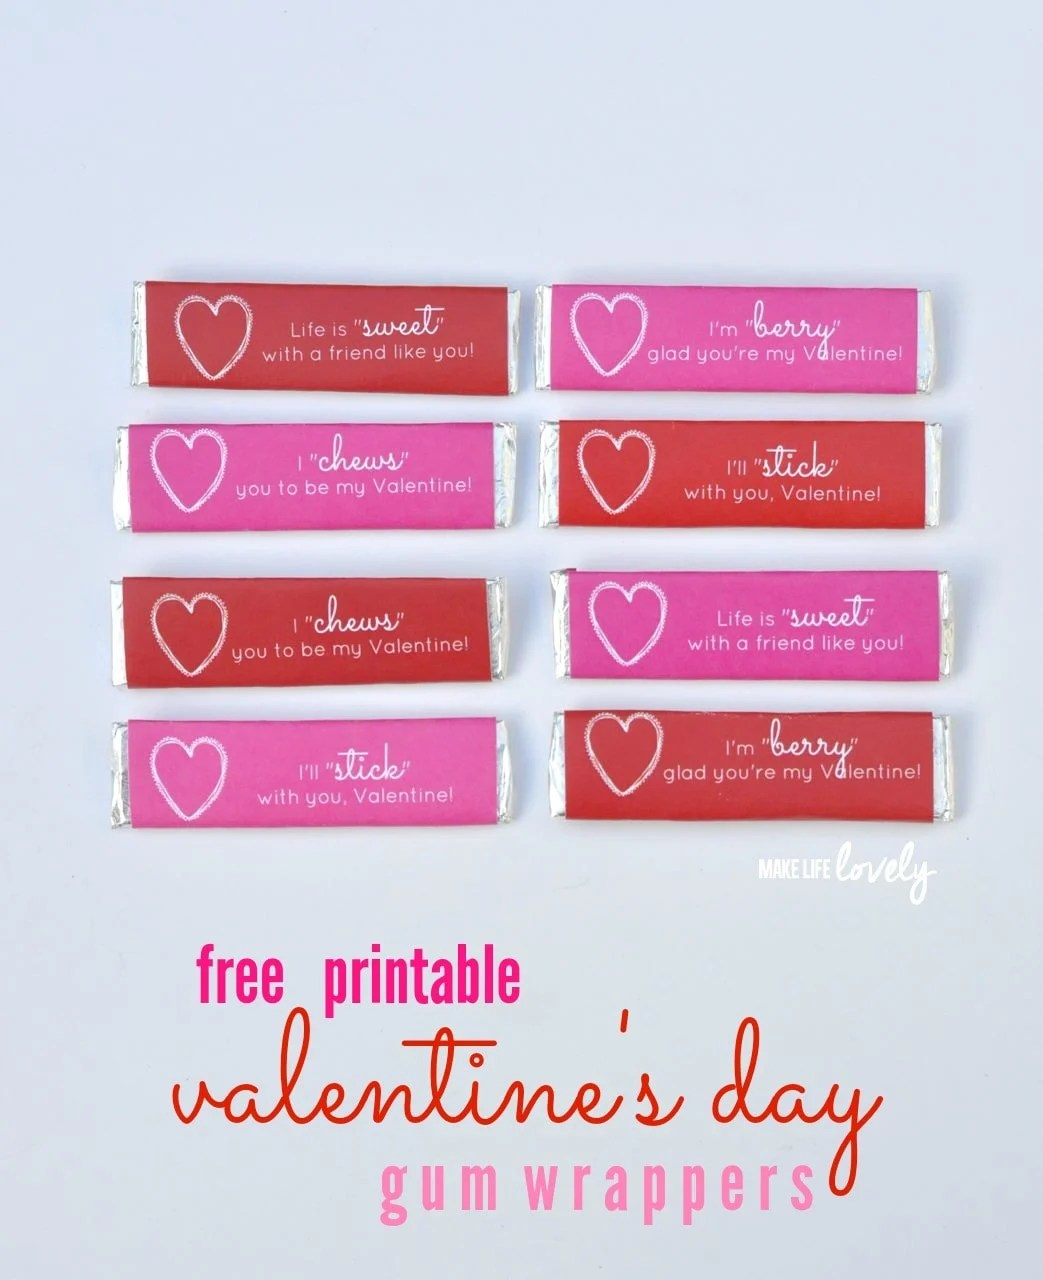 Free Printable Valentines Gum Wrappers Make Life Lovely